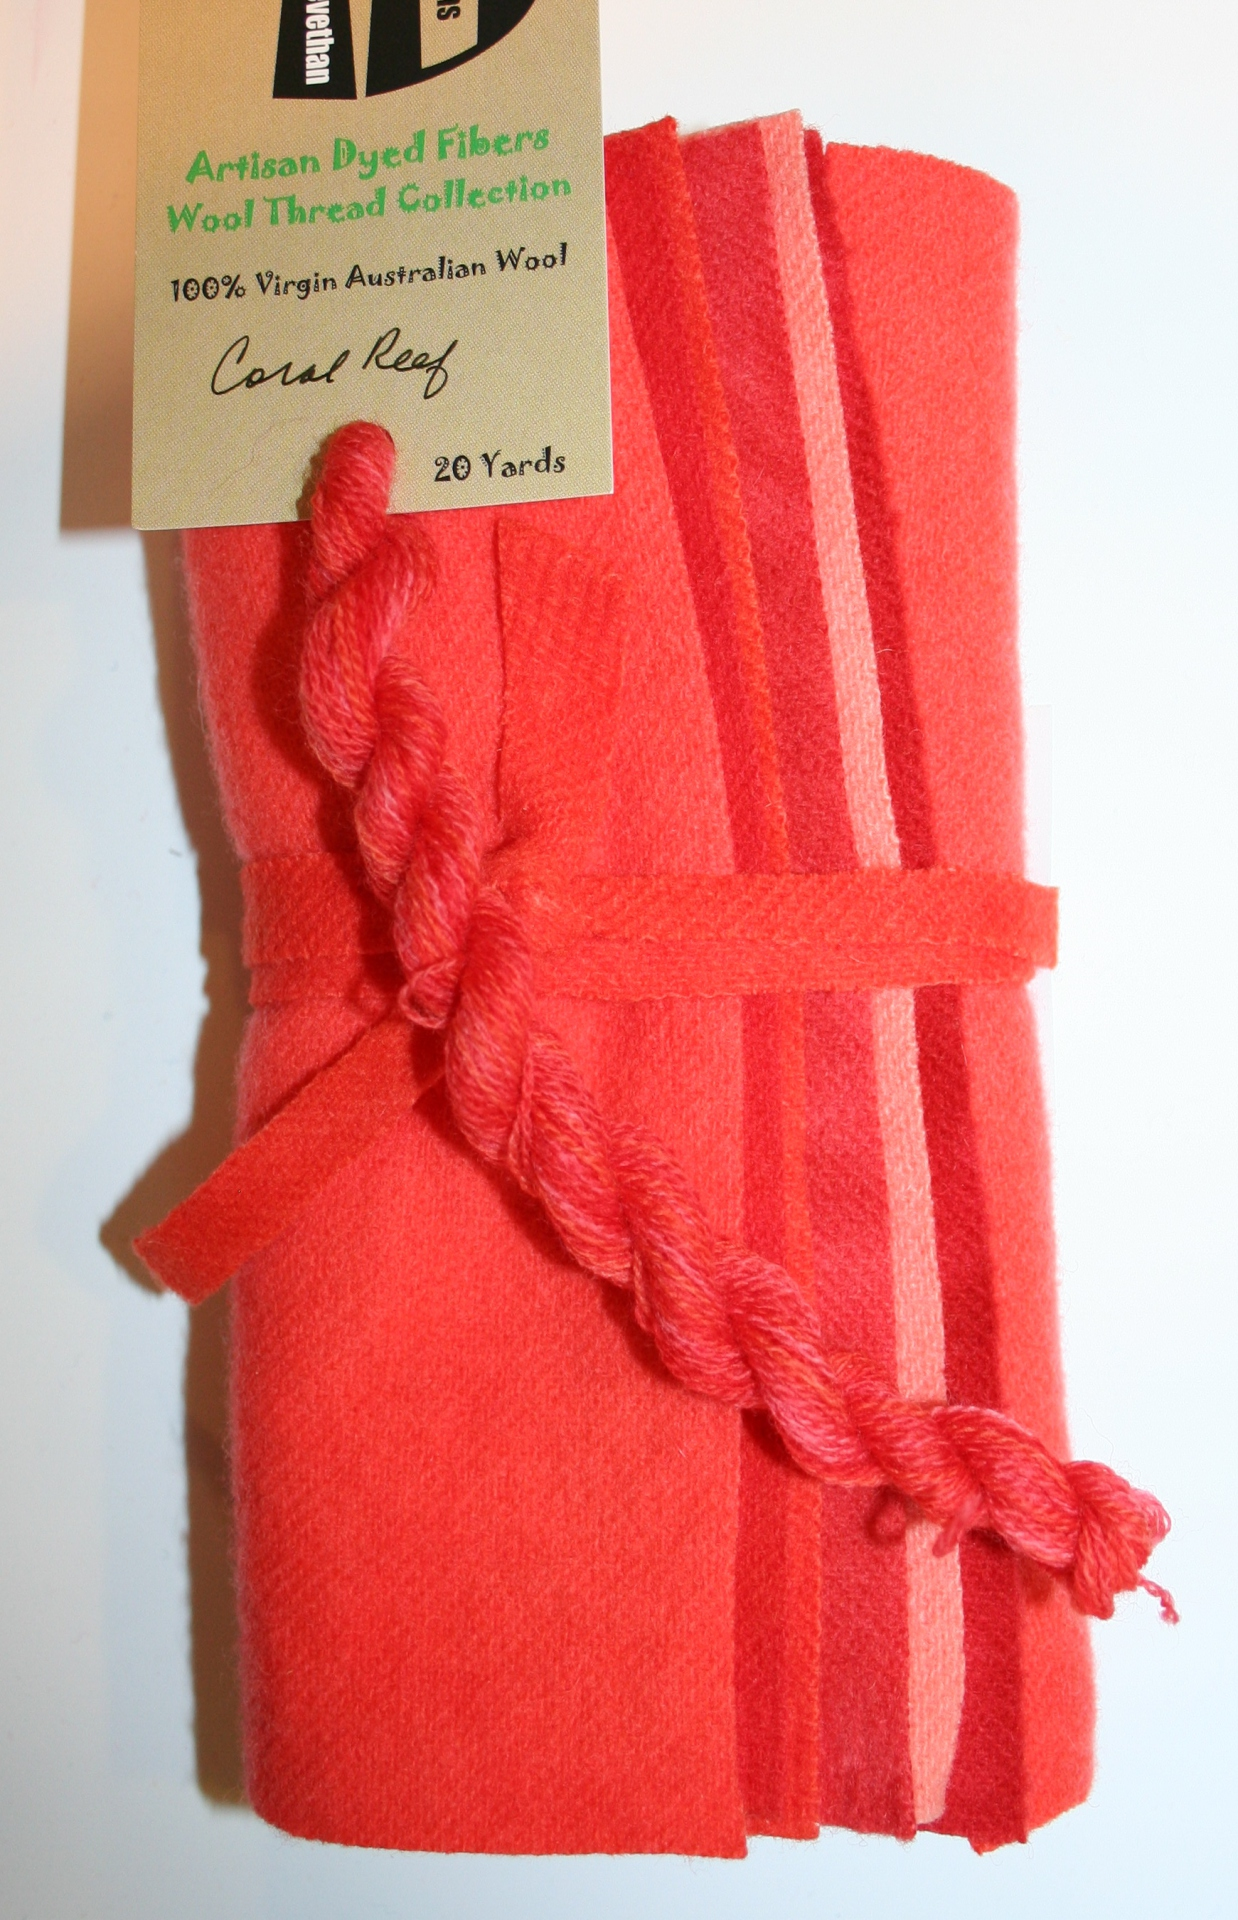 Coral Reef Hand Dyed Wool Six Pack Collection